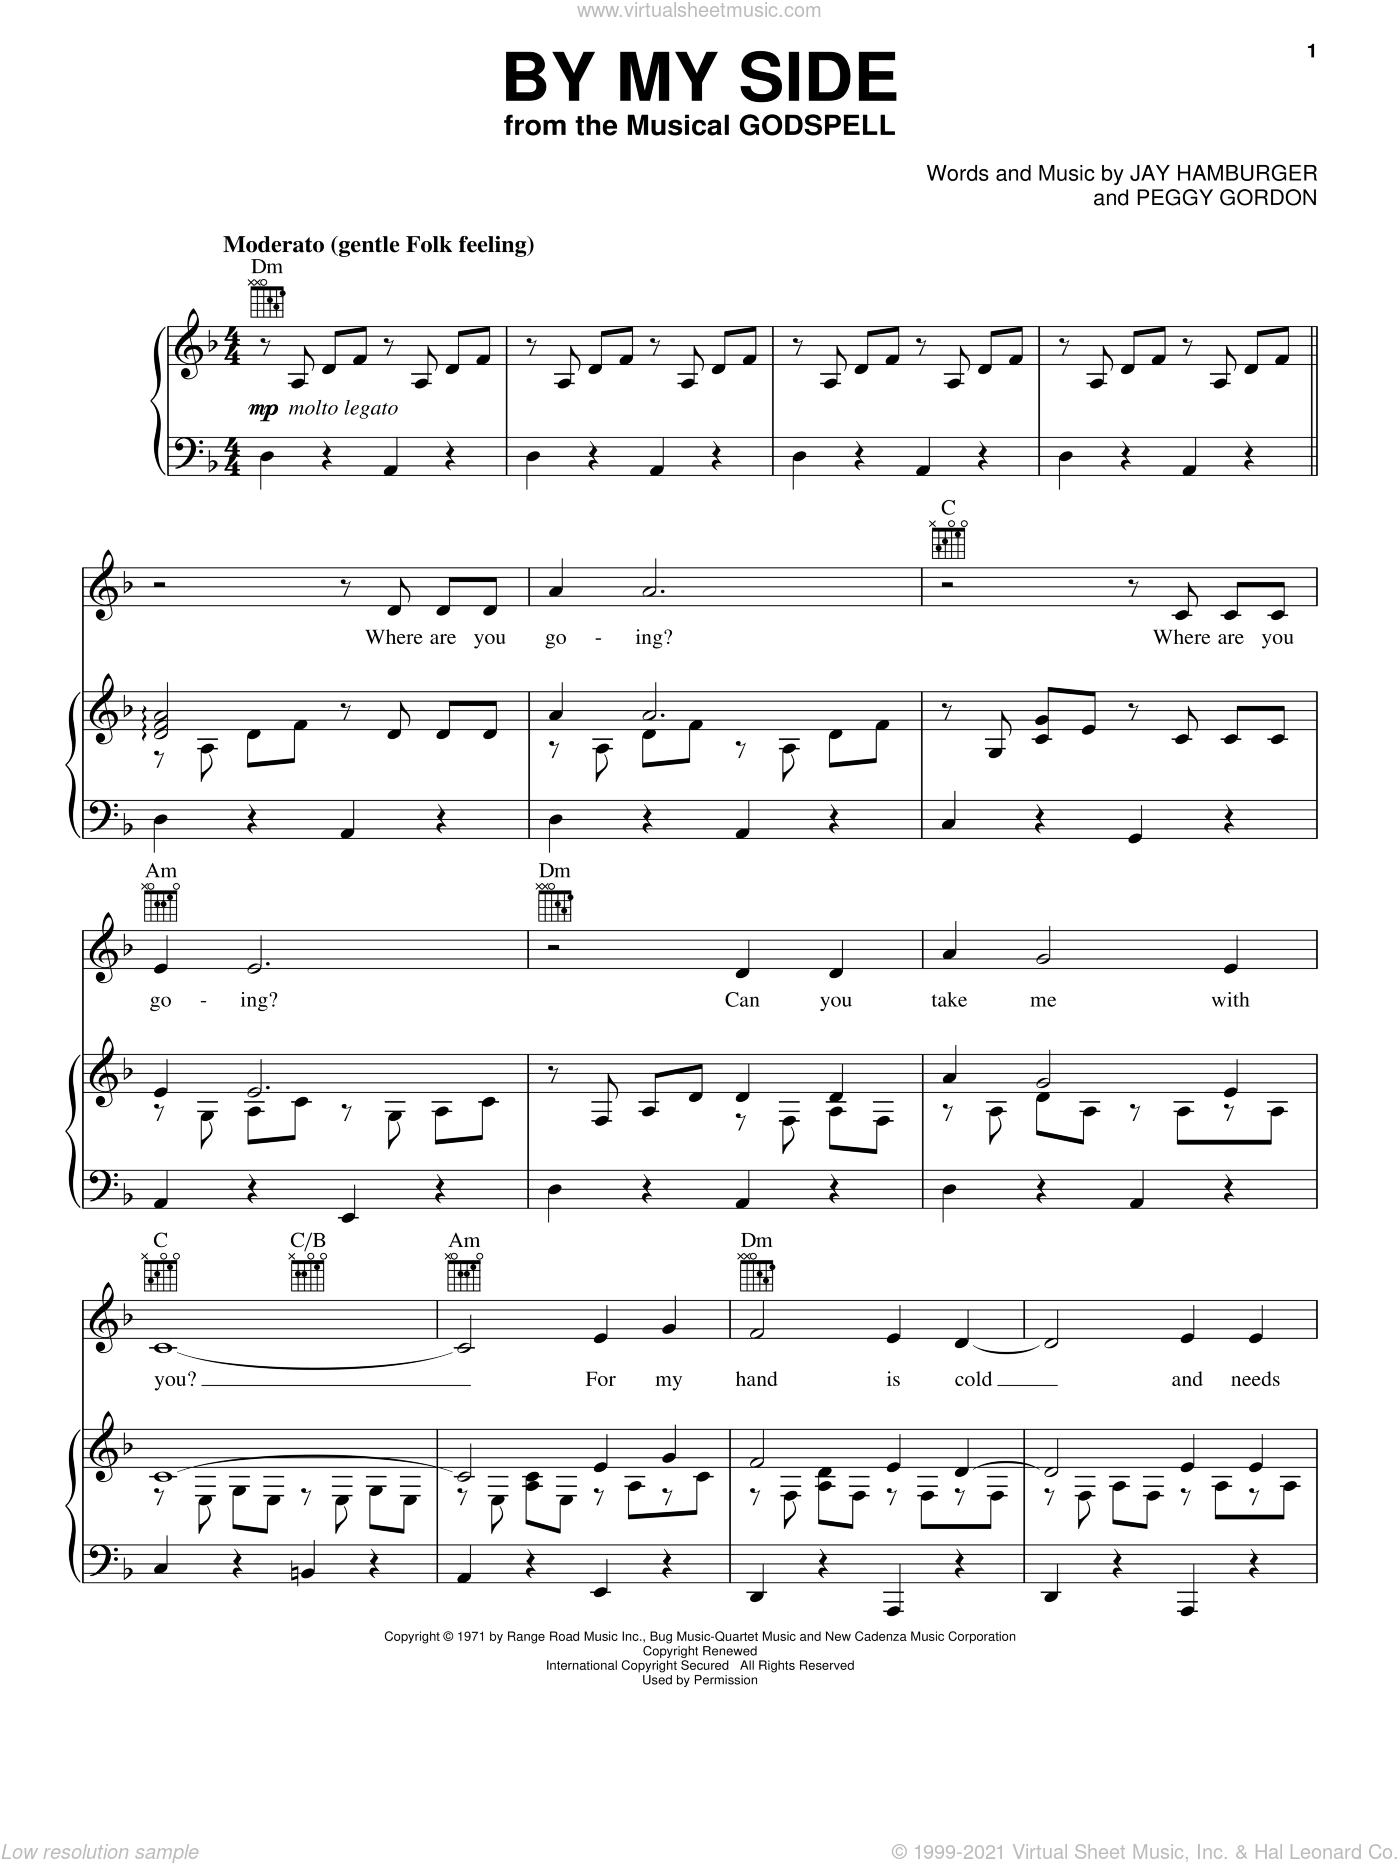 By My Side sheet music for voice, piano or guitar by Peggy Gordon